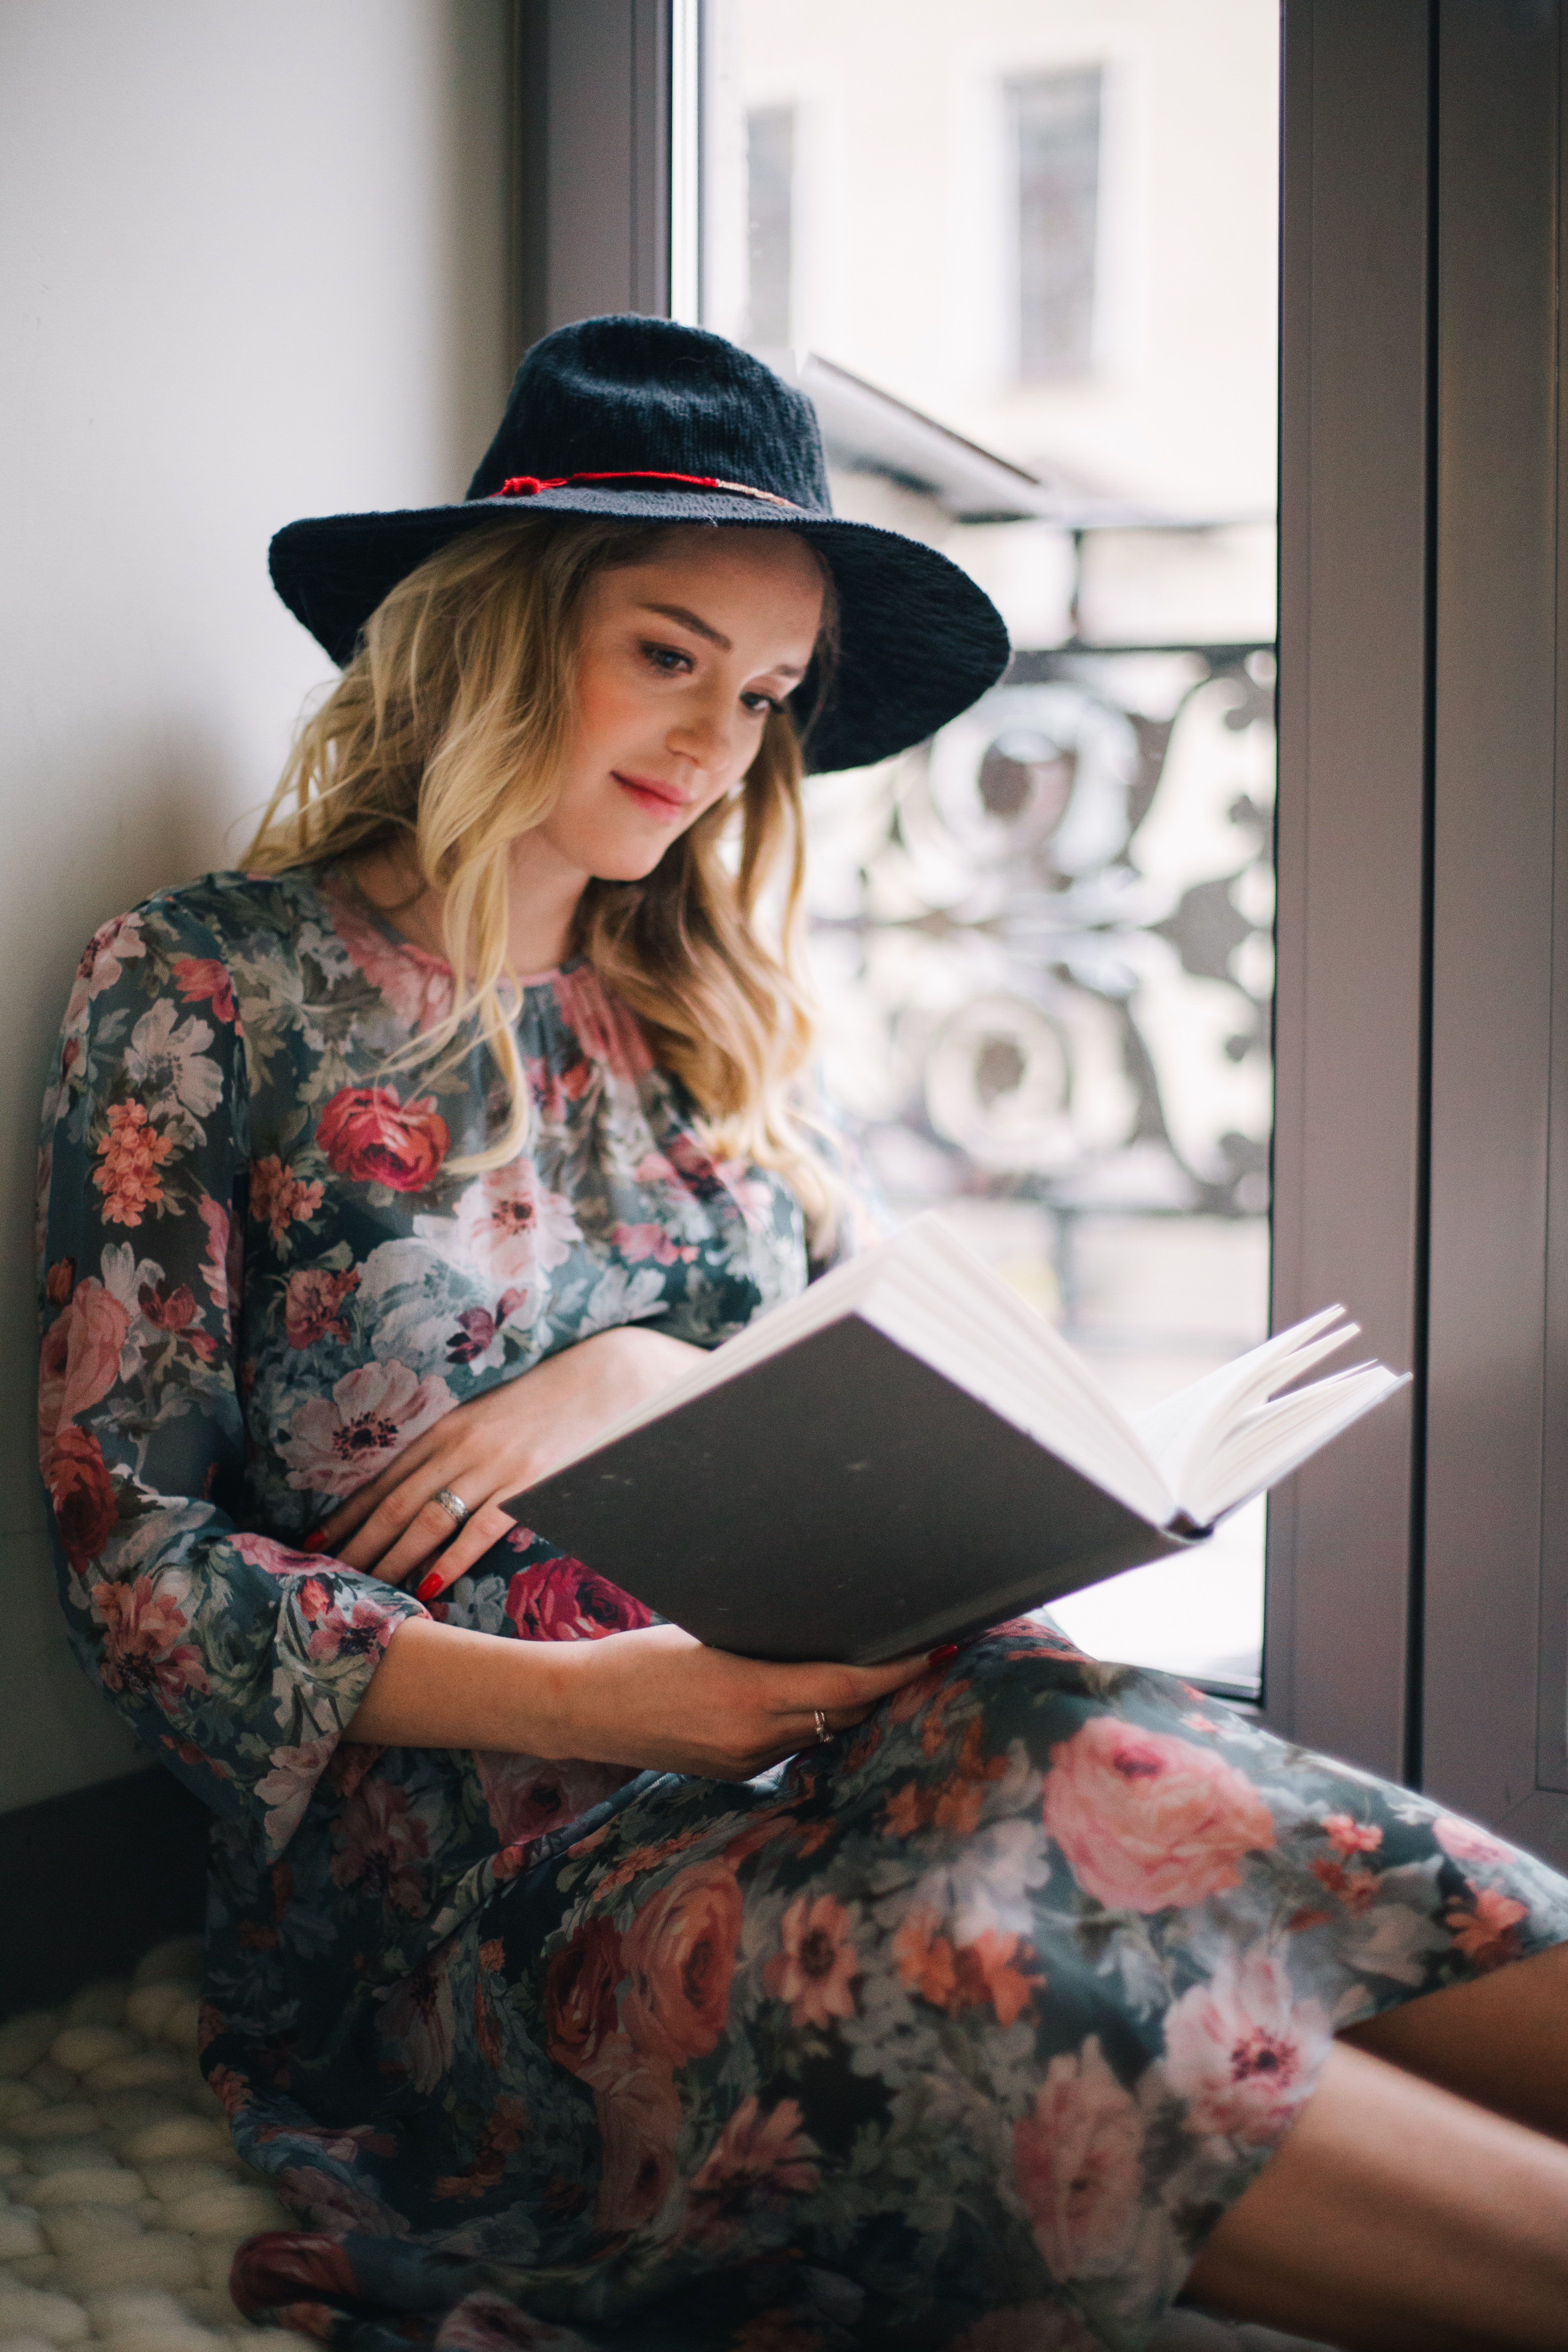 Pregnant Woman Wearing Green, Red, and White Floral Dress Reading a Book Near Window, Attractive, Indoors, Woman, Wear, HQ Photo